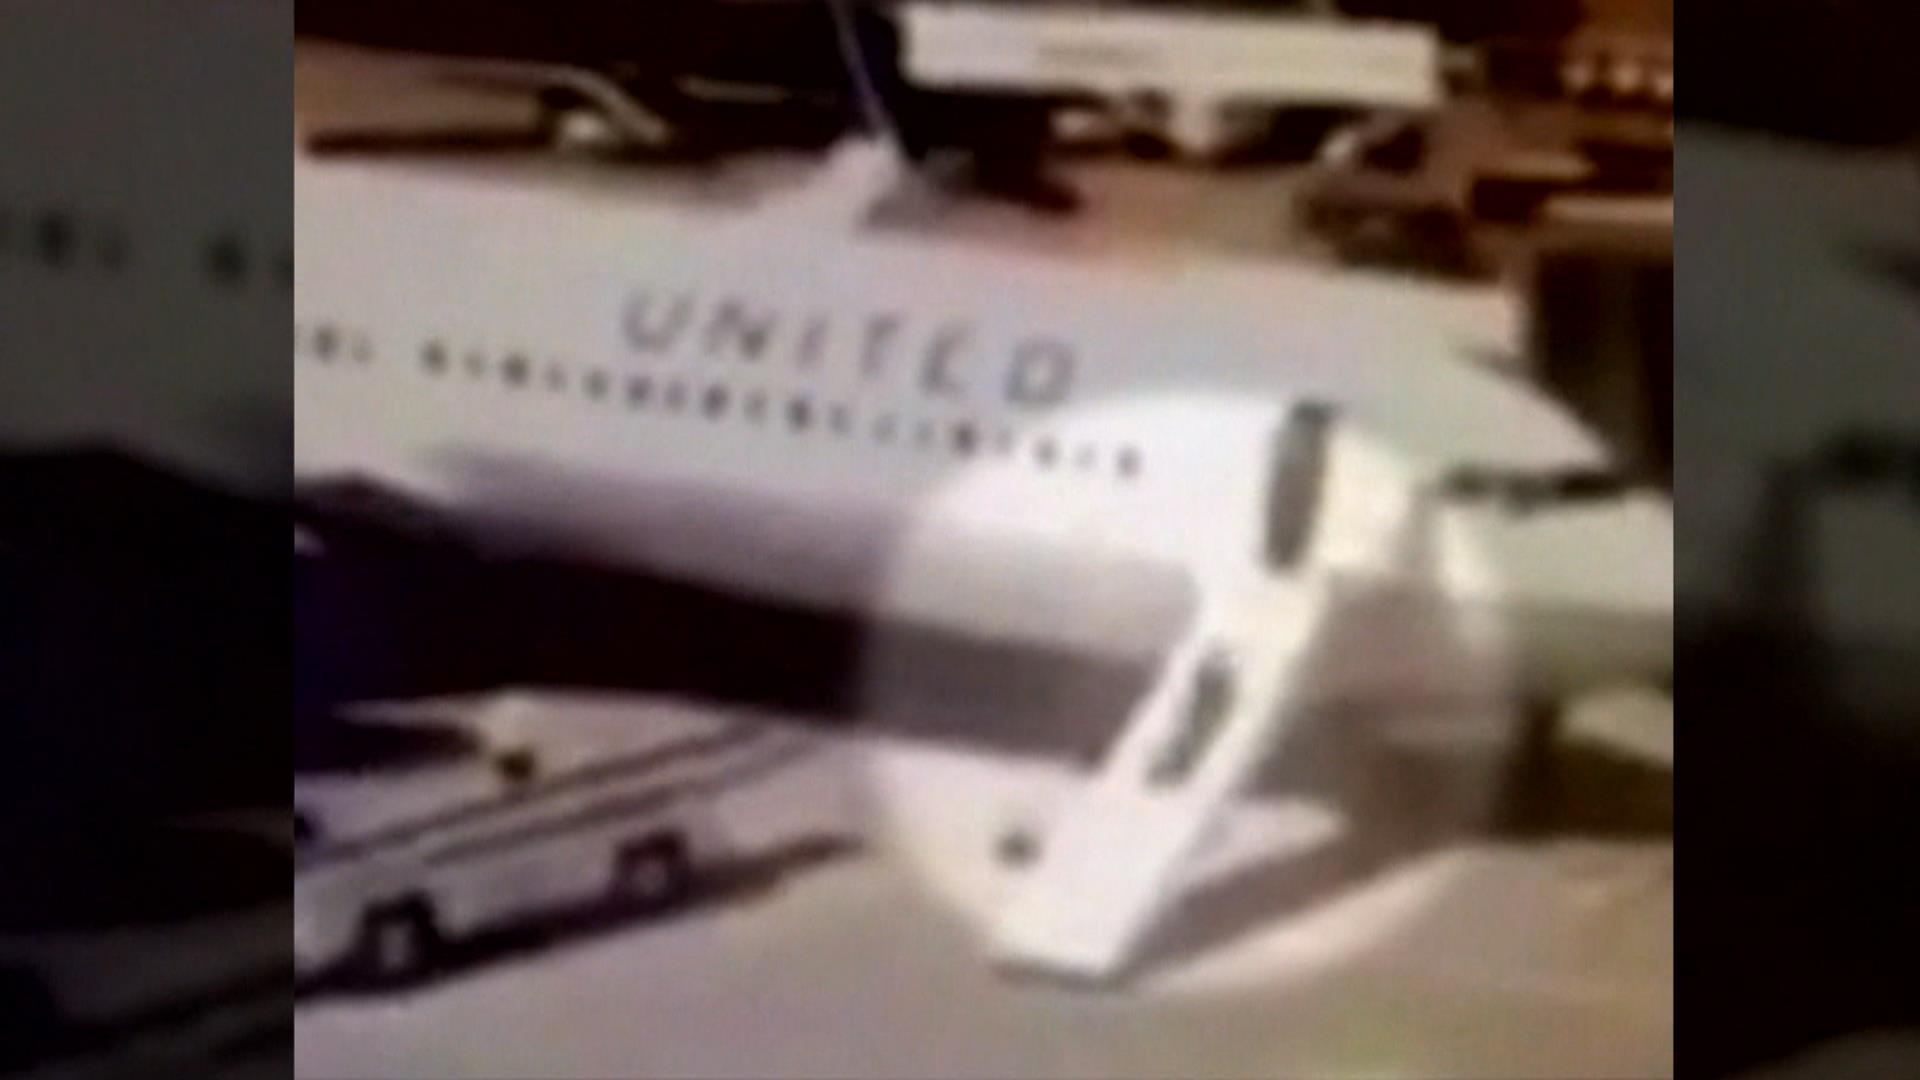 Caught on Camera: Flight Attendant Pulls Emergency Slide to Deploy Plane